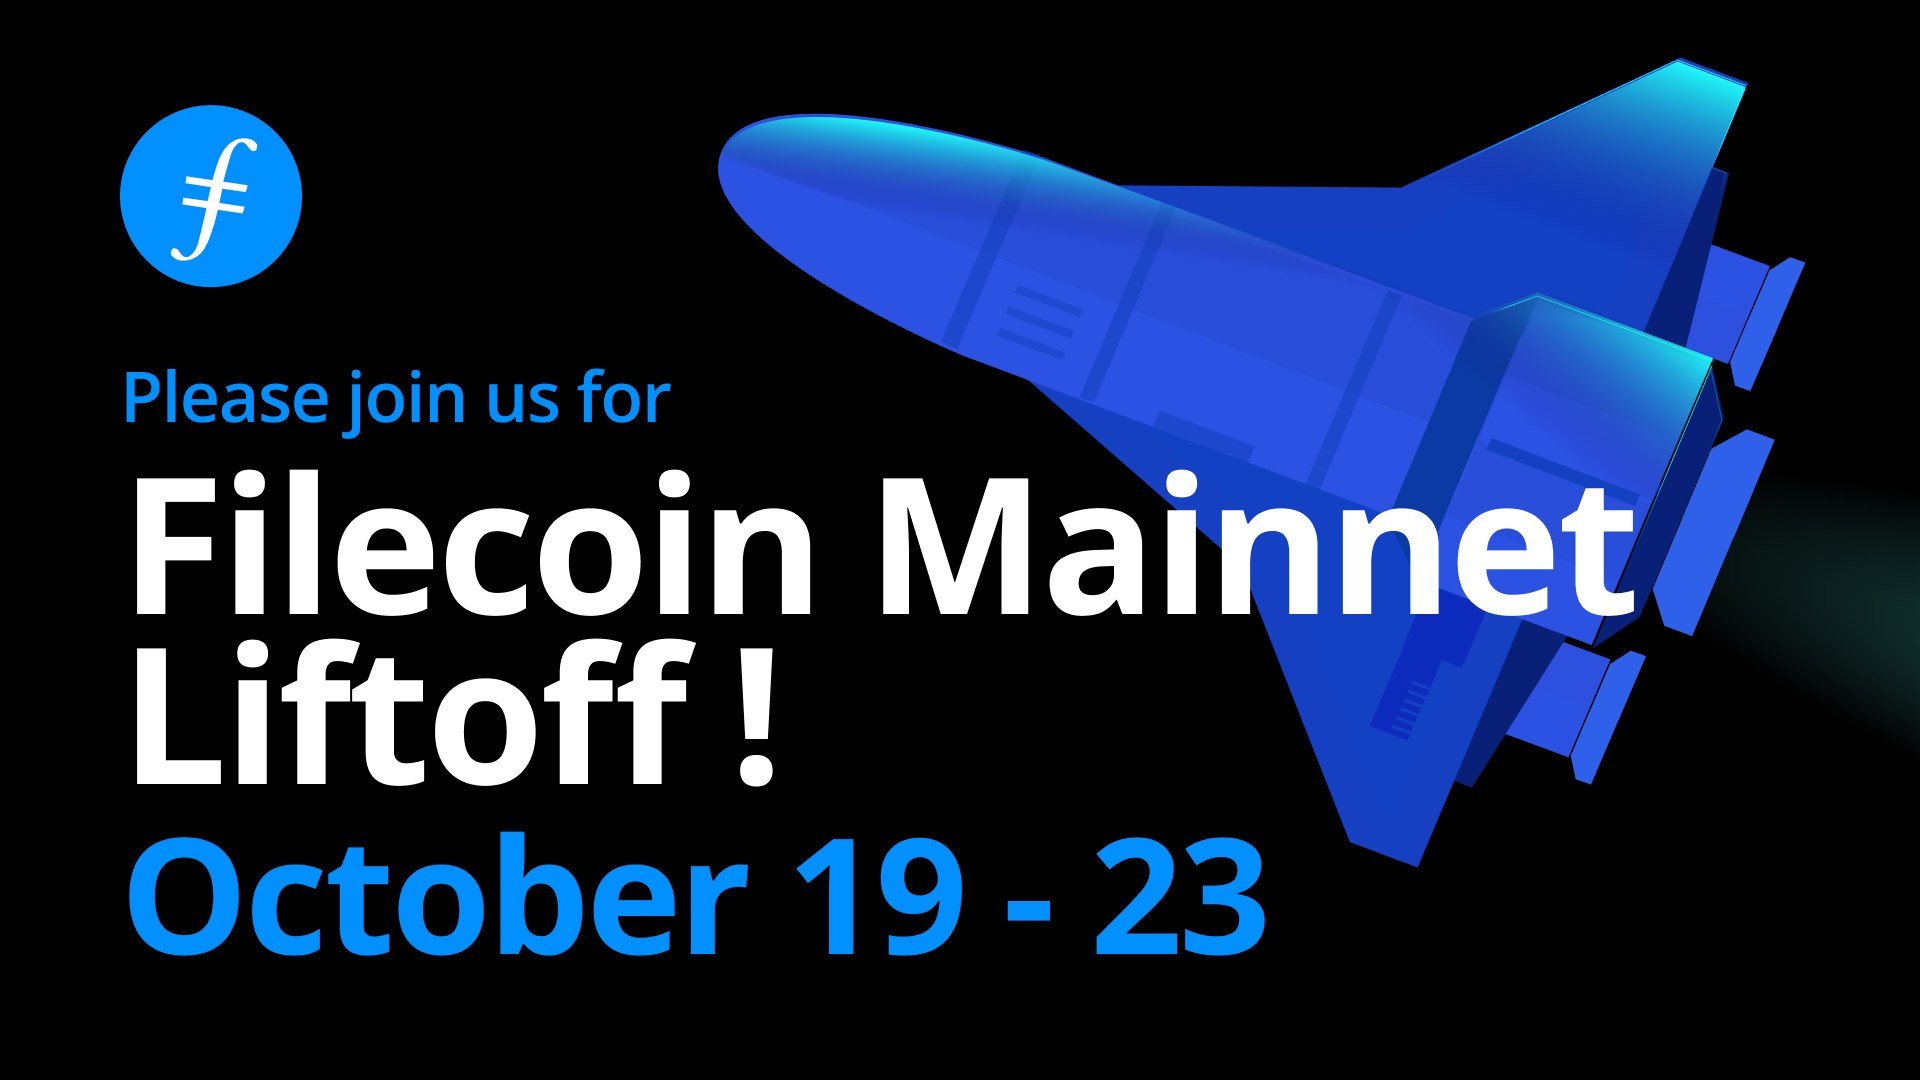 Filecoin Mainnet Liftoff